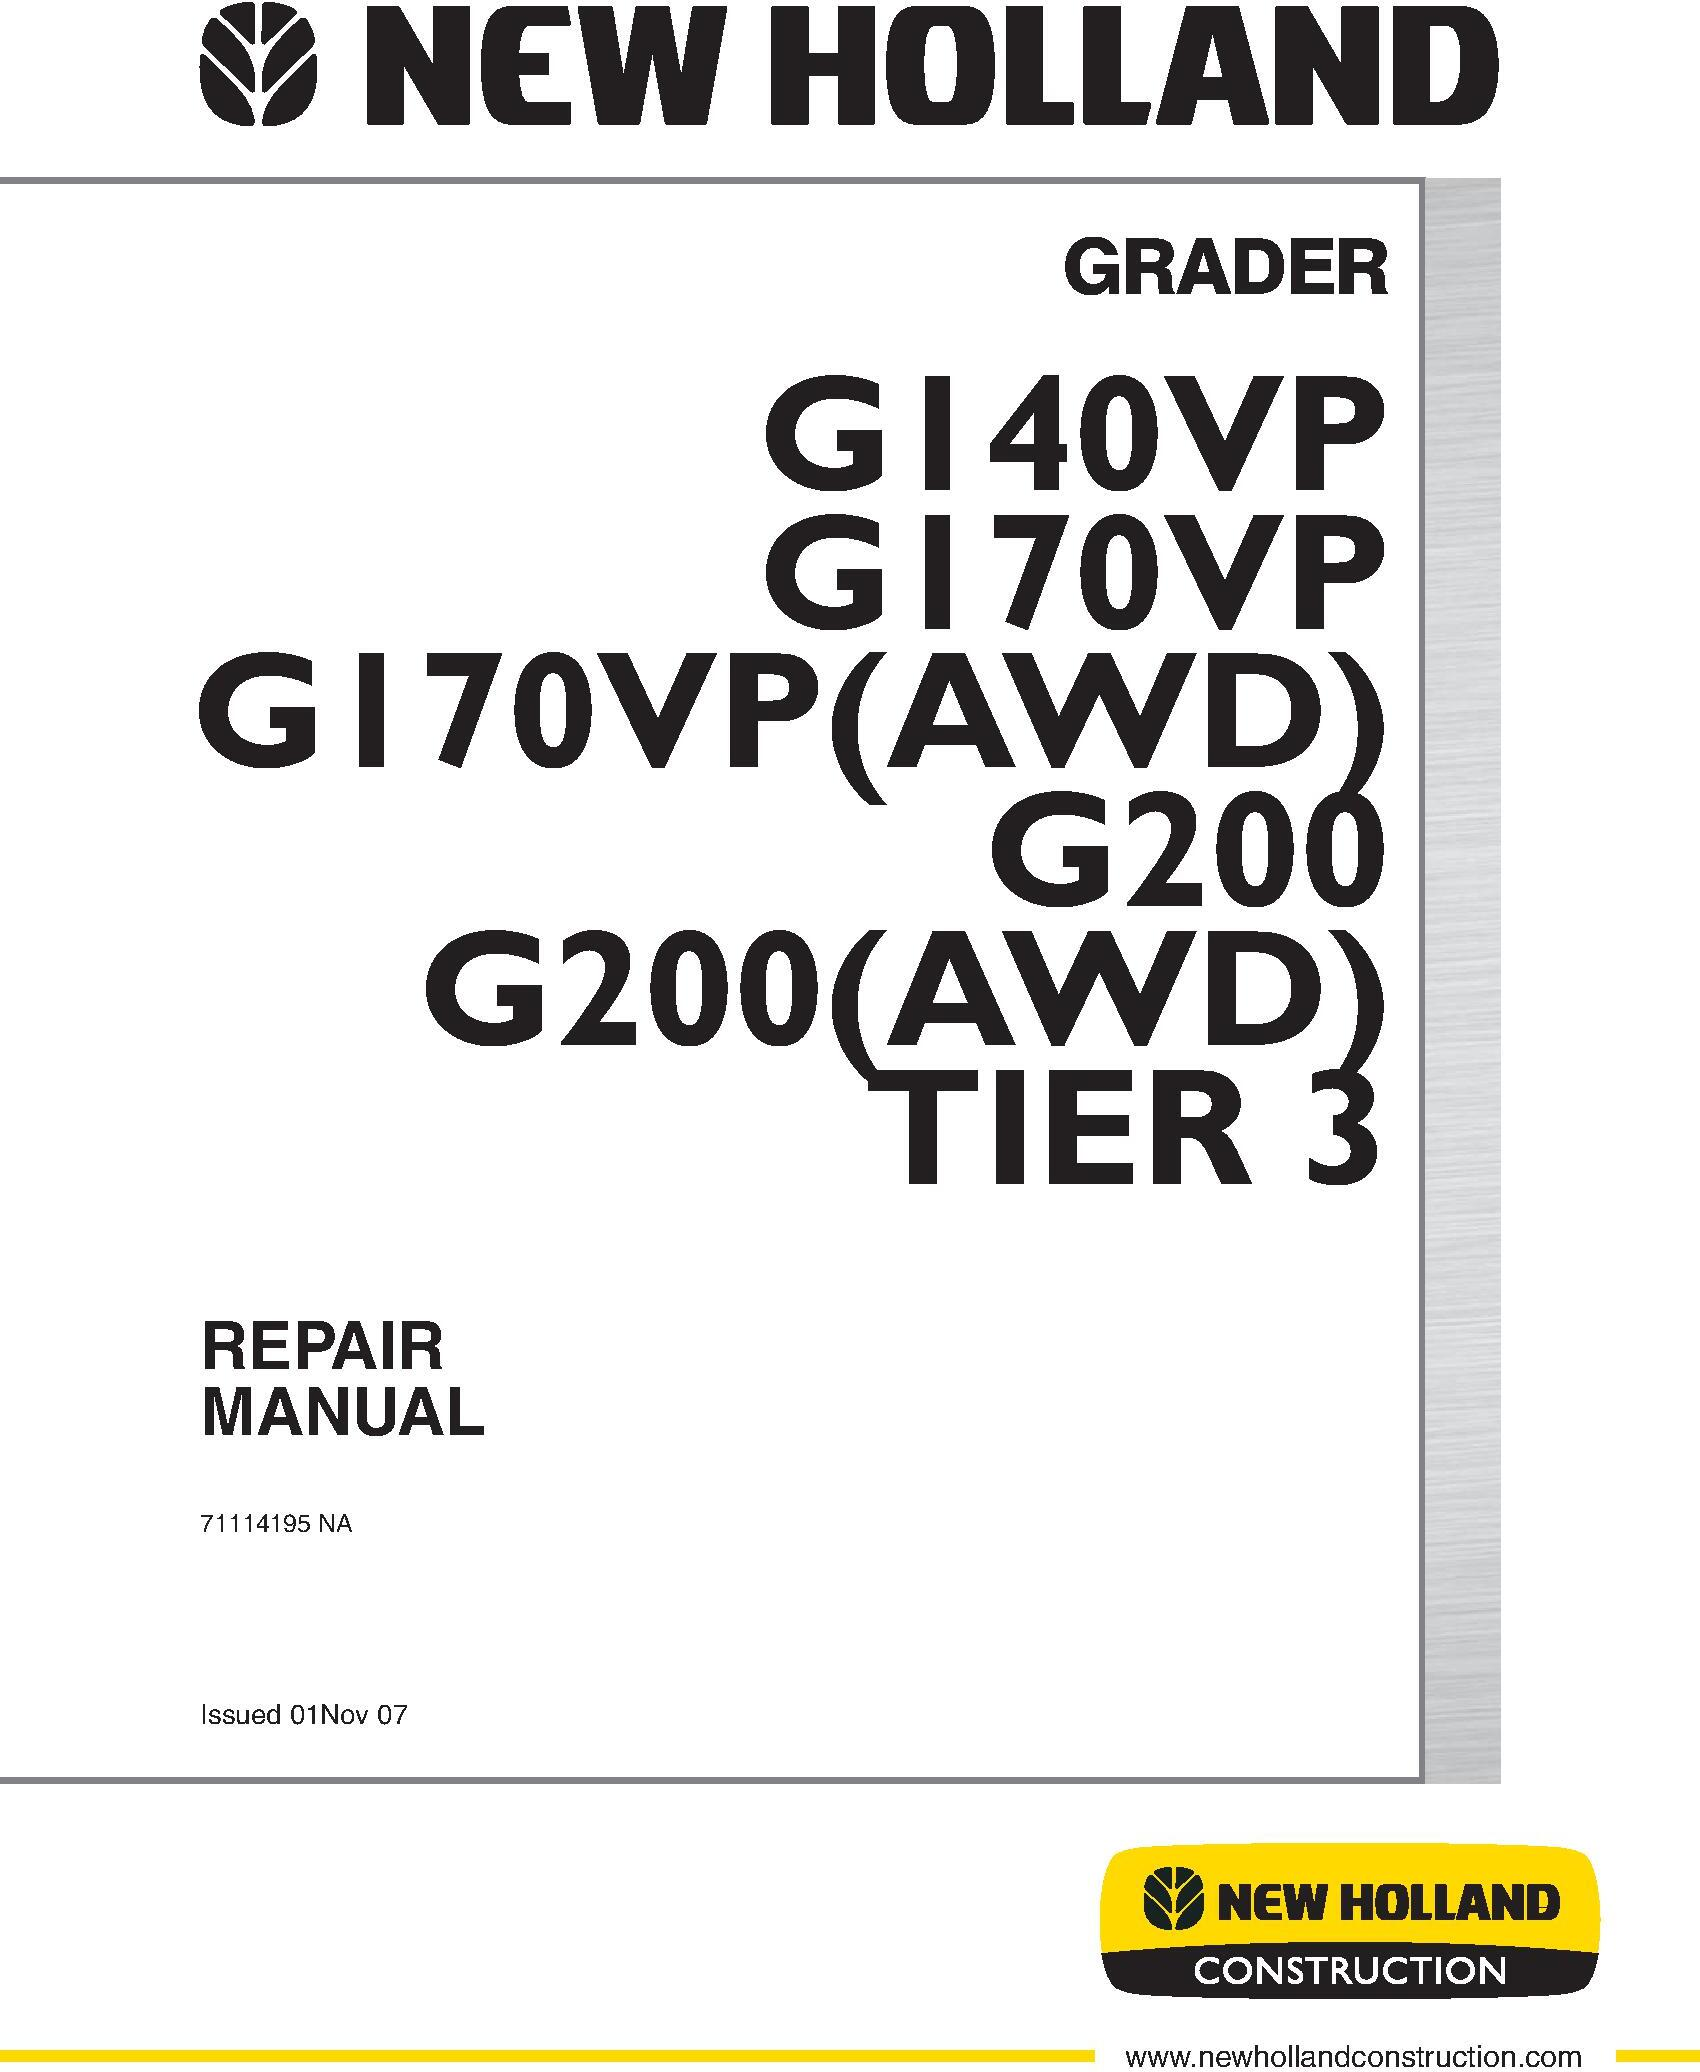 New Holland G140VP, G170VP, G170VP (AWD), G200, G200 (AWD) Tier 3 Grader Service Manual